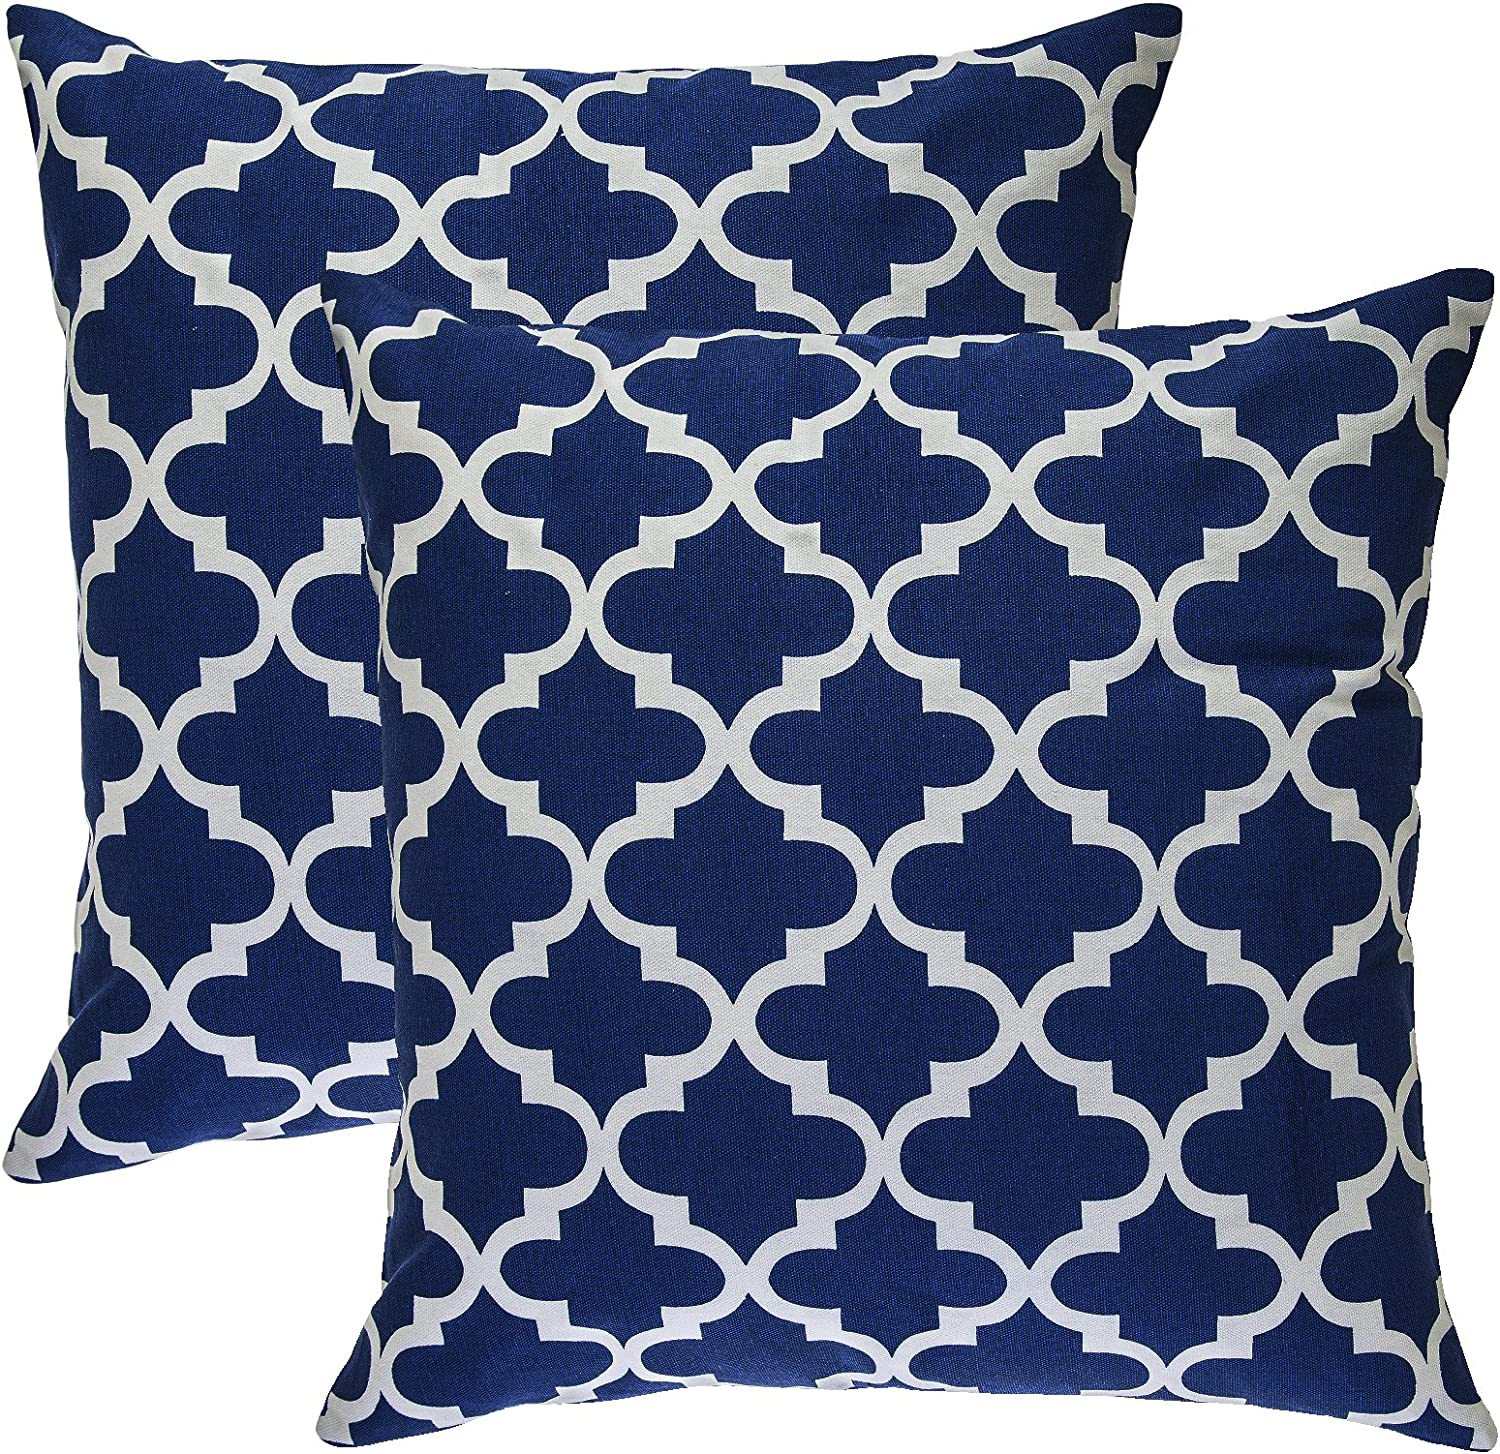 Amazon Com Treewool Pack Of 2 Decorative Throw Pillow Covers Trellis Accent 100 Cotton Cushion Shams Cases 18 X 18 Inches 45 X 45 Cm Navy Blue Home Kitchen